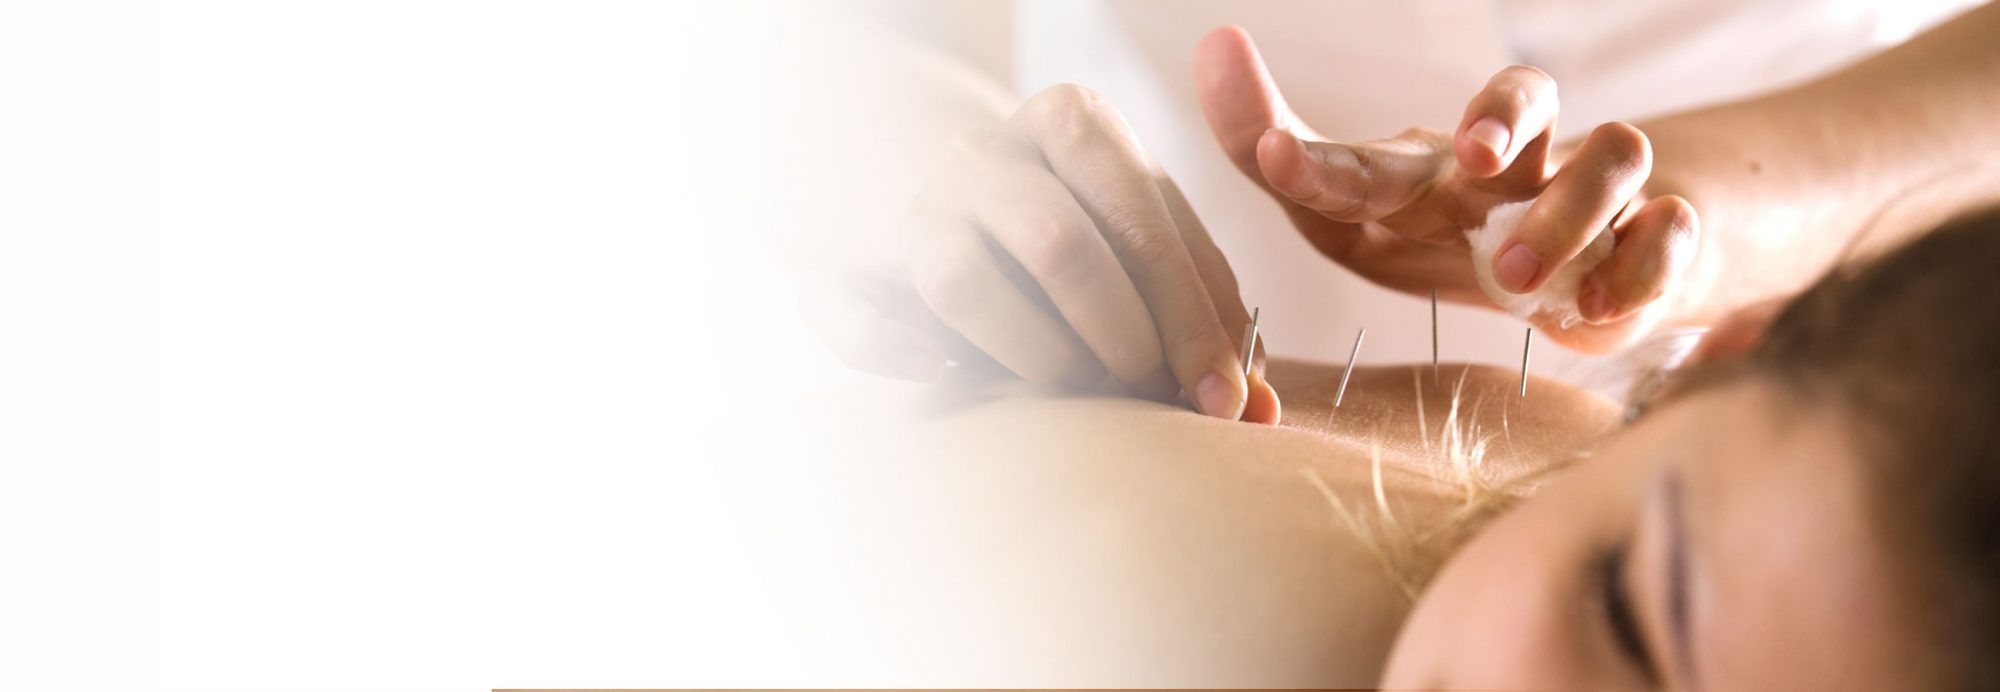 acupuncture-at-parkhill-bolton